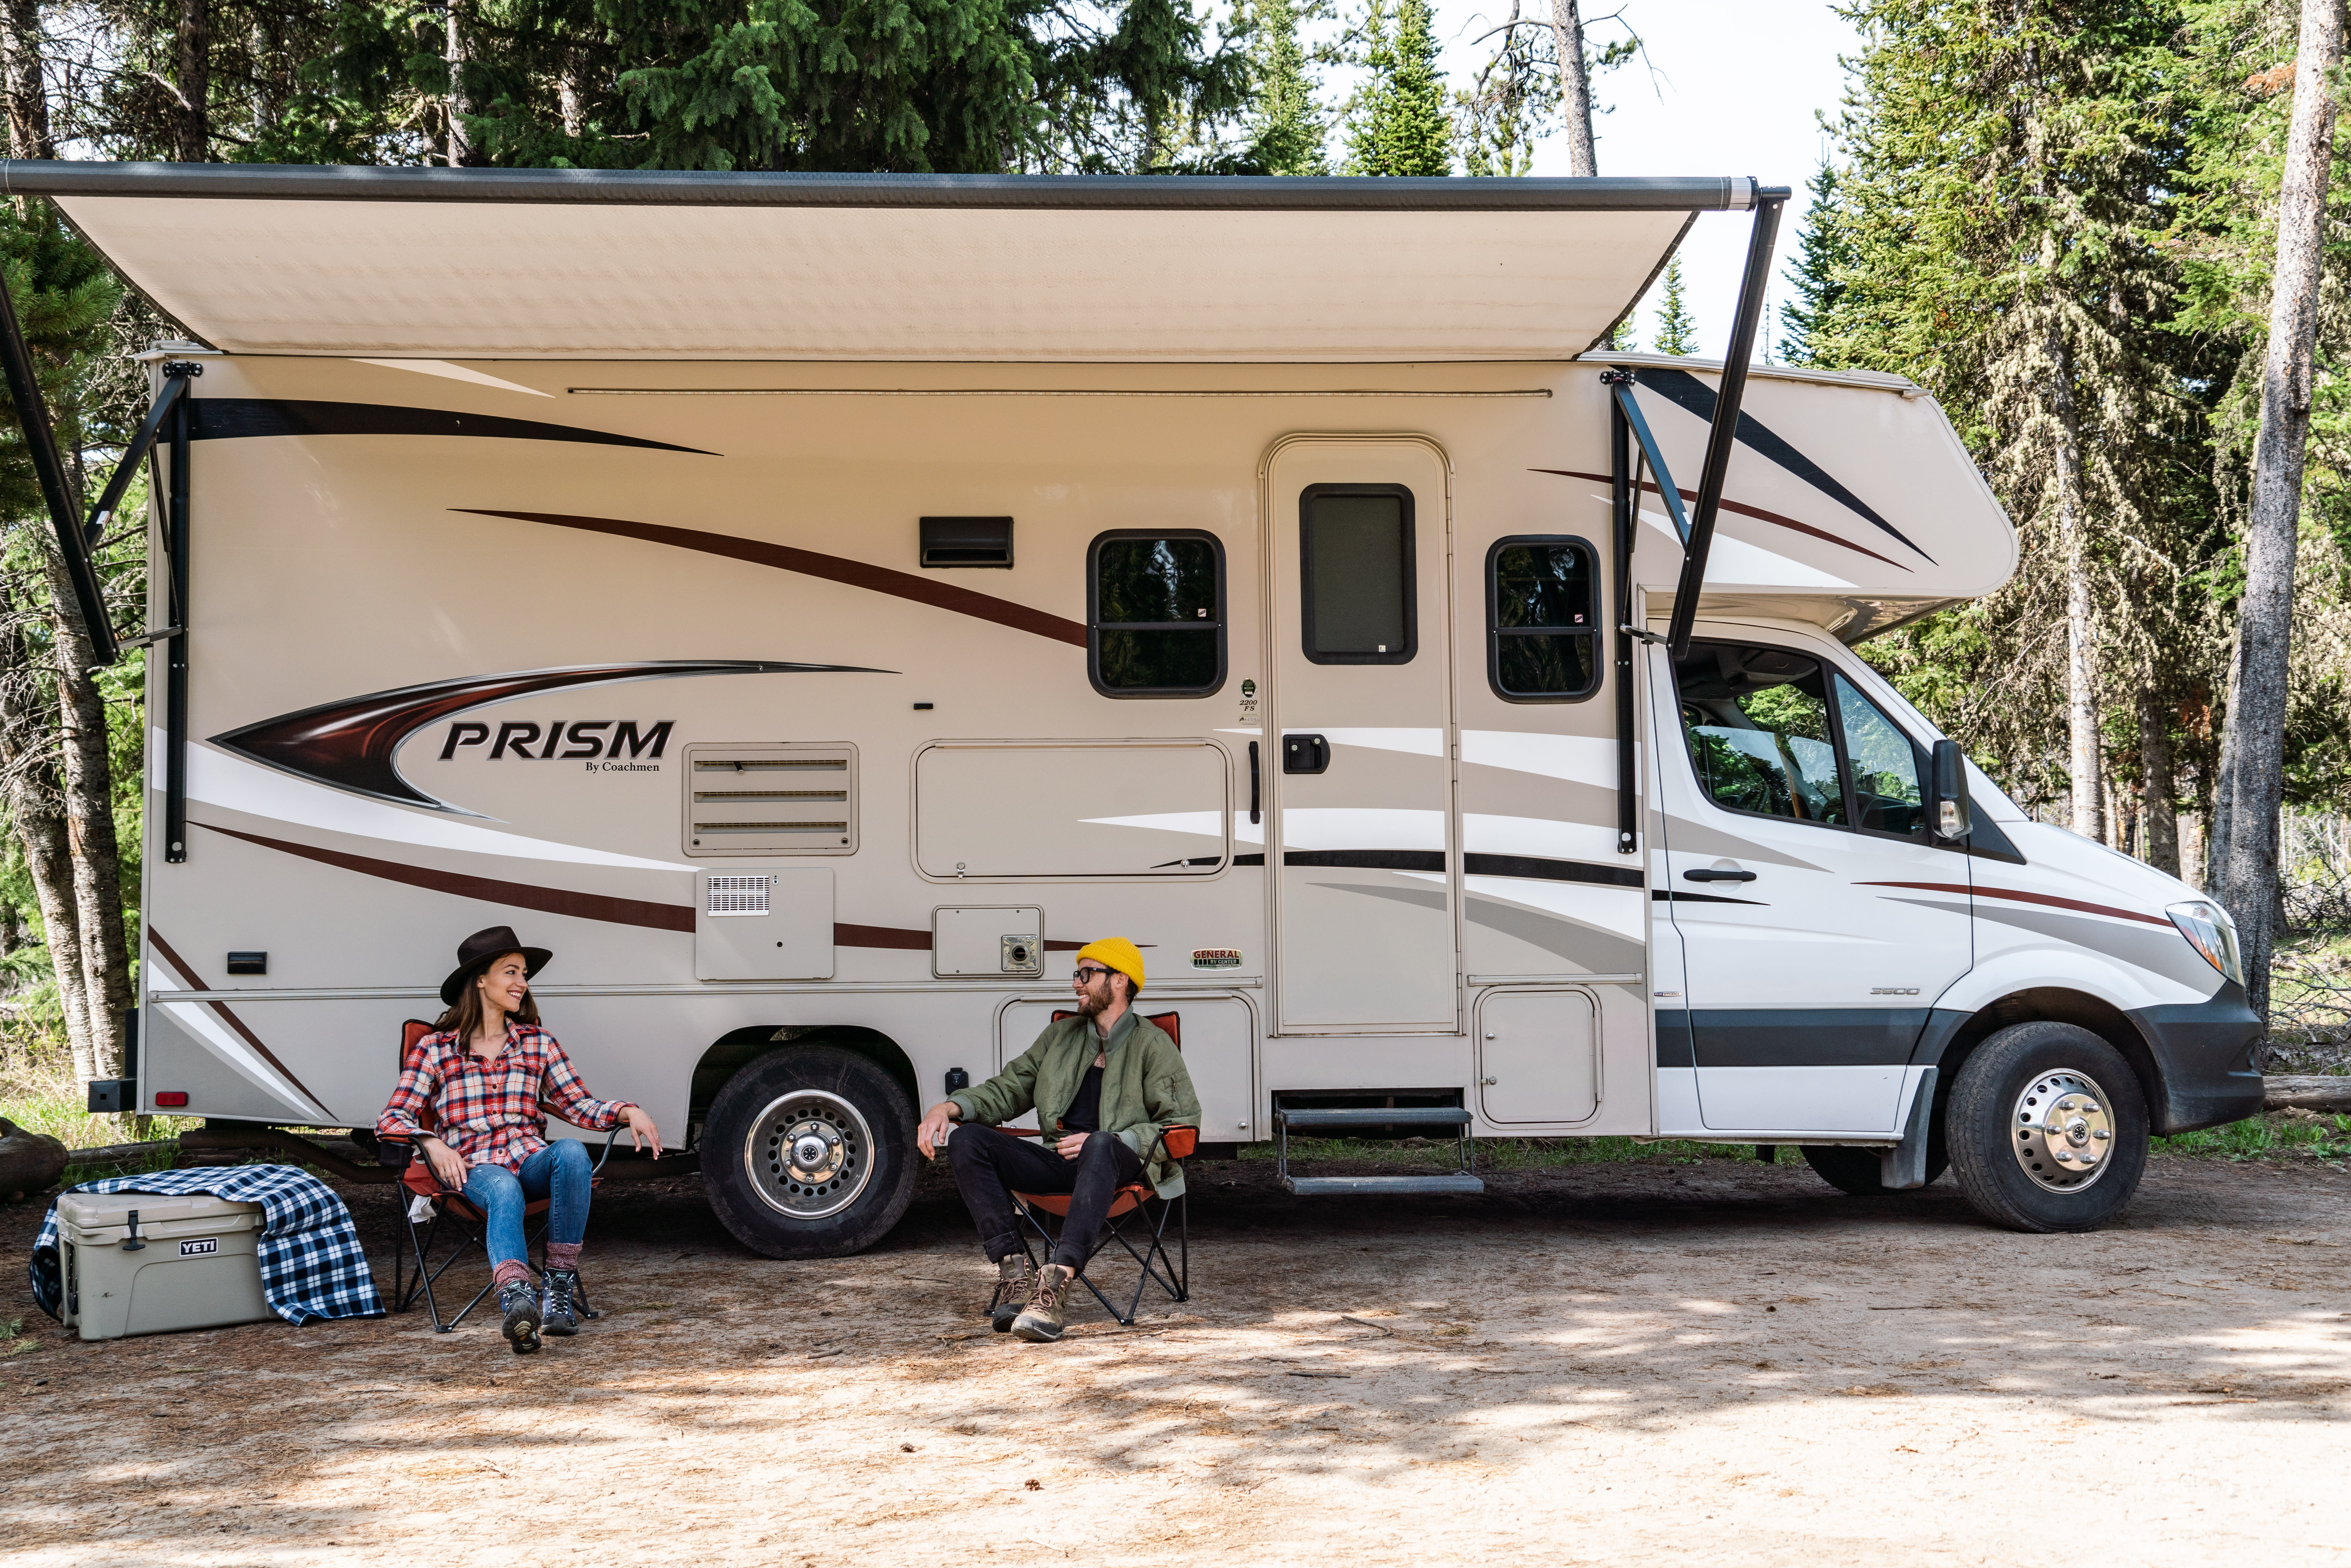 man and woman in front of RV